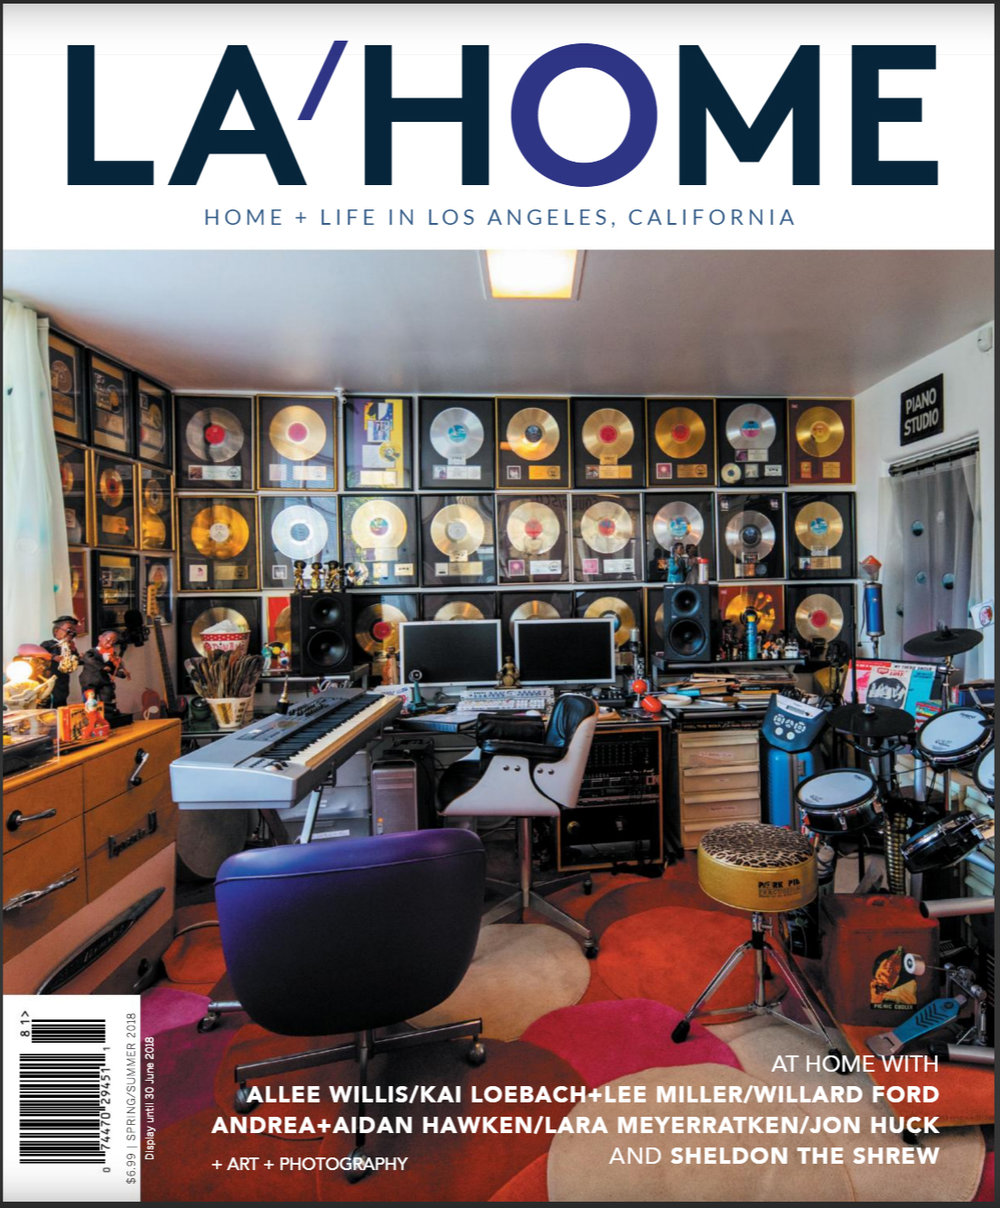 LAHOME-Cover.jpg